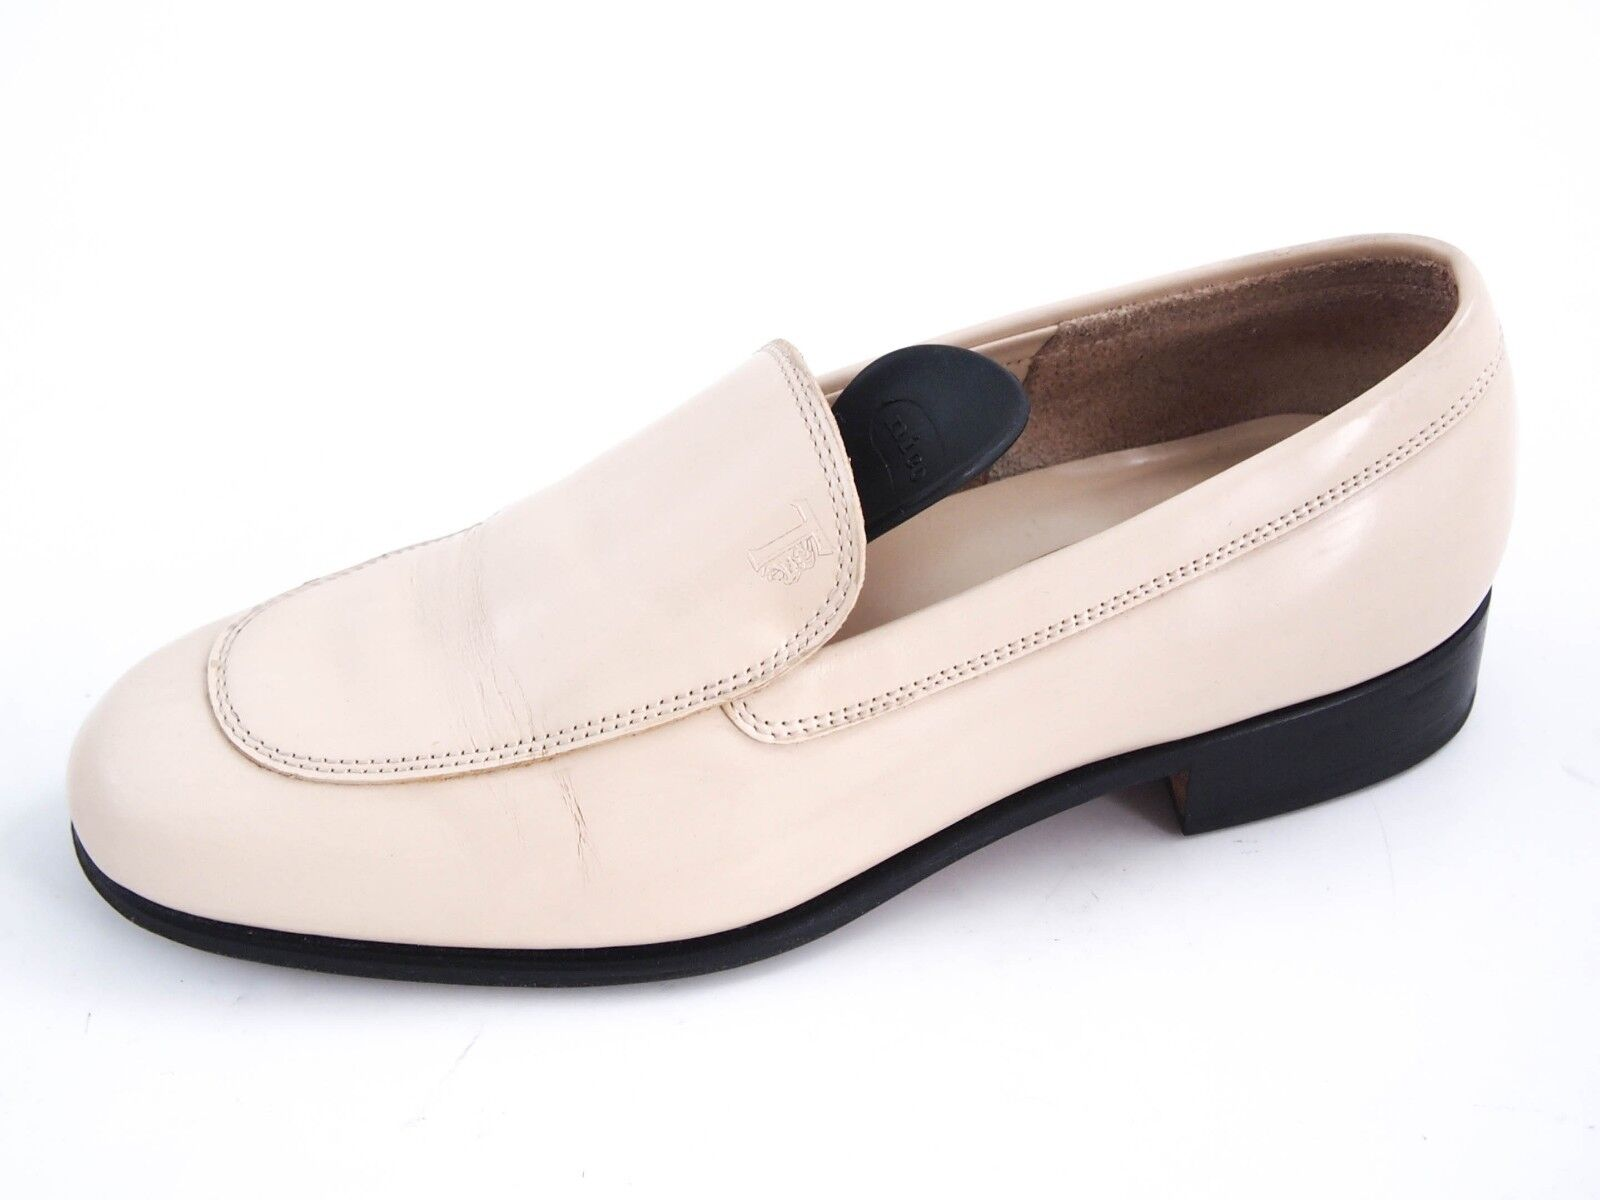 TOD's moccasin loafers, ivory patent leather, women's size, EU EU EU 36.5 US 6.5  480 a8a94c